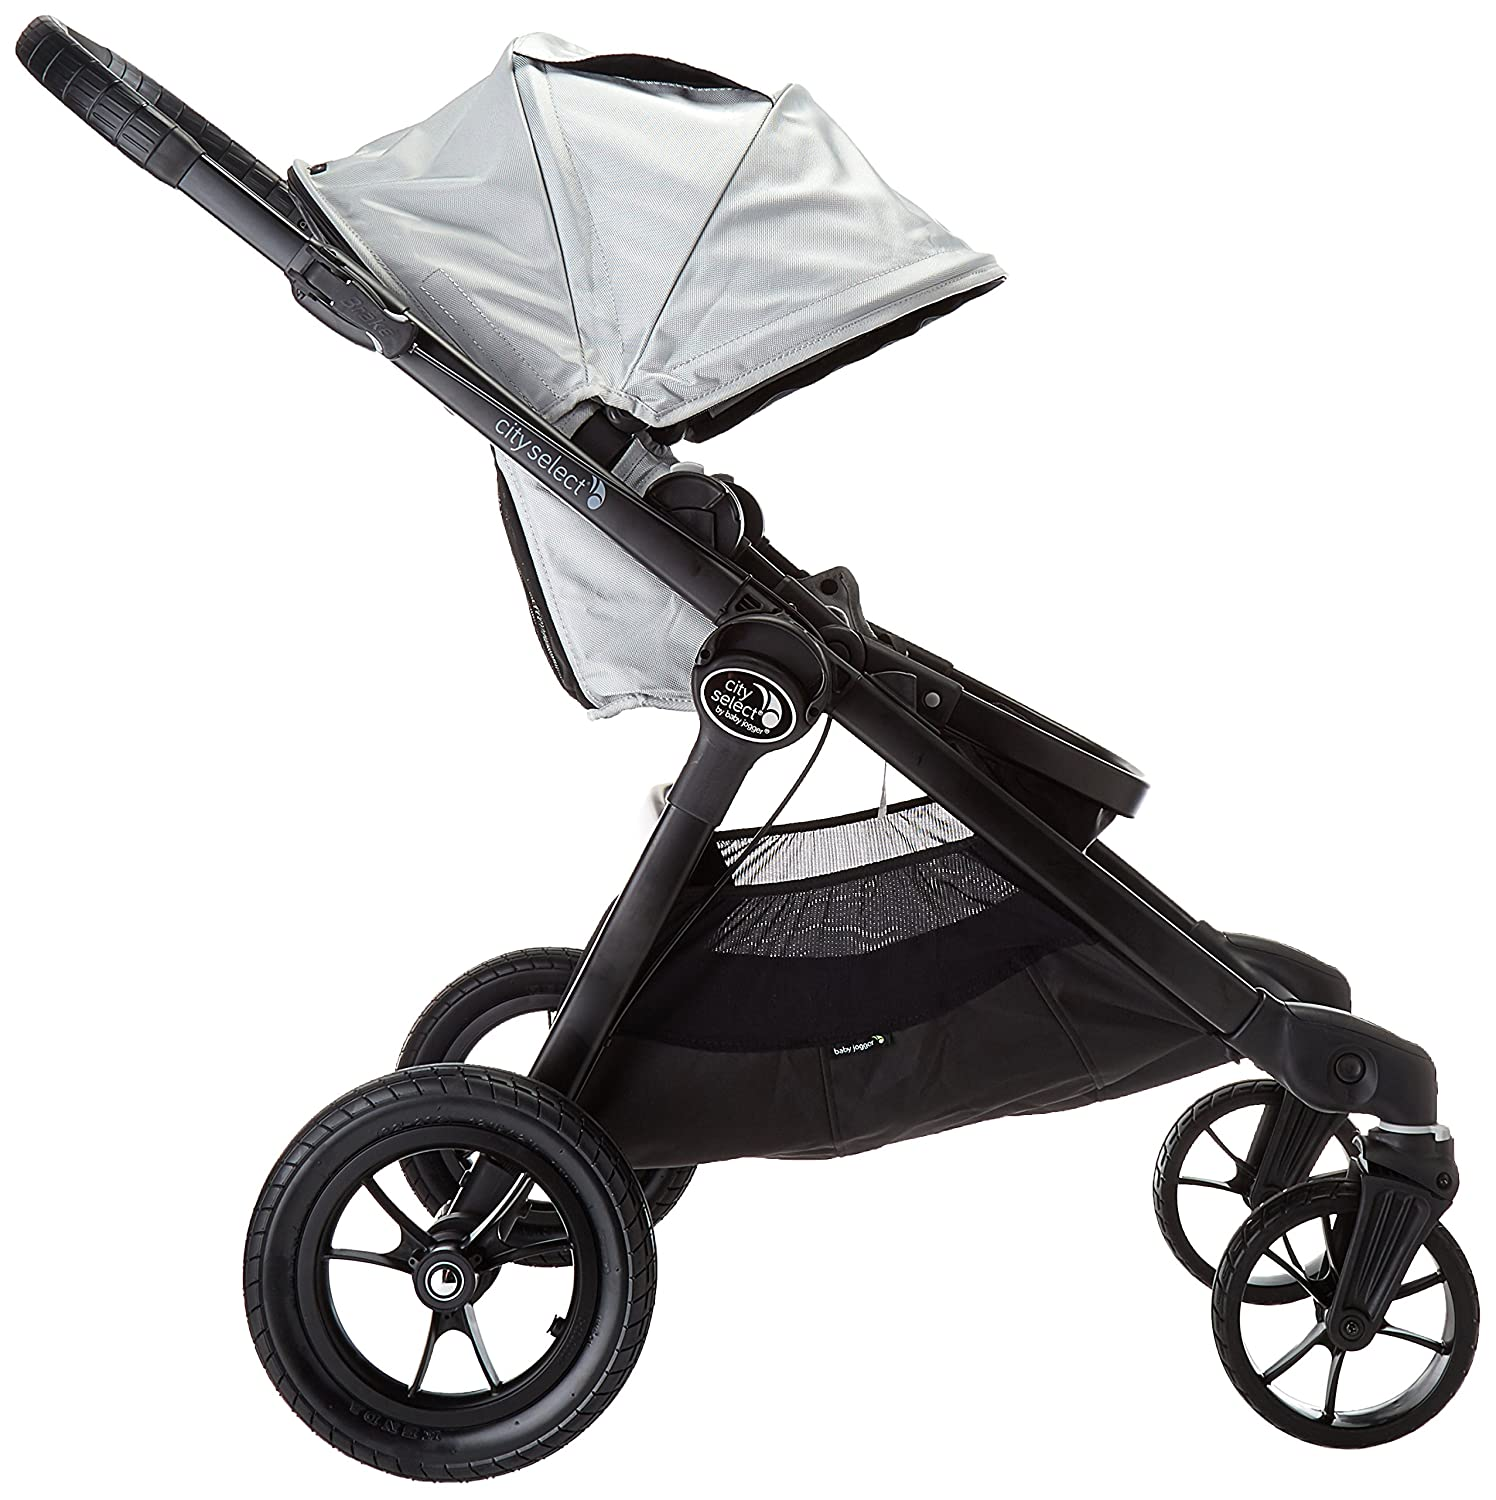 Amazon.com: Baby Jogger Carriola de bebé para ciudad City ...